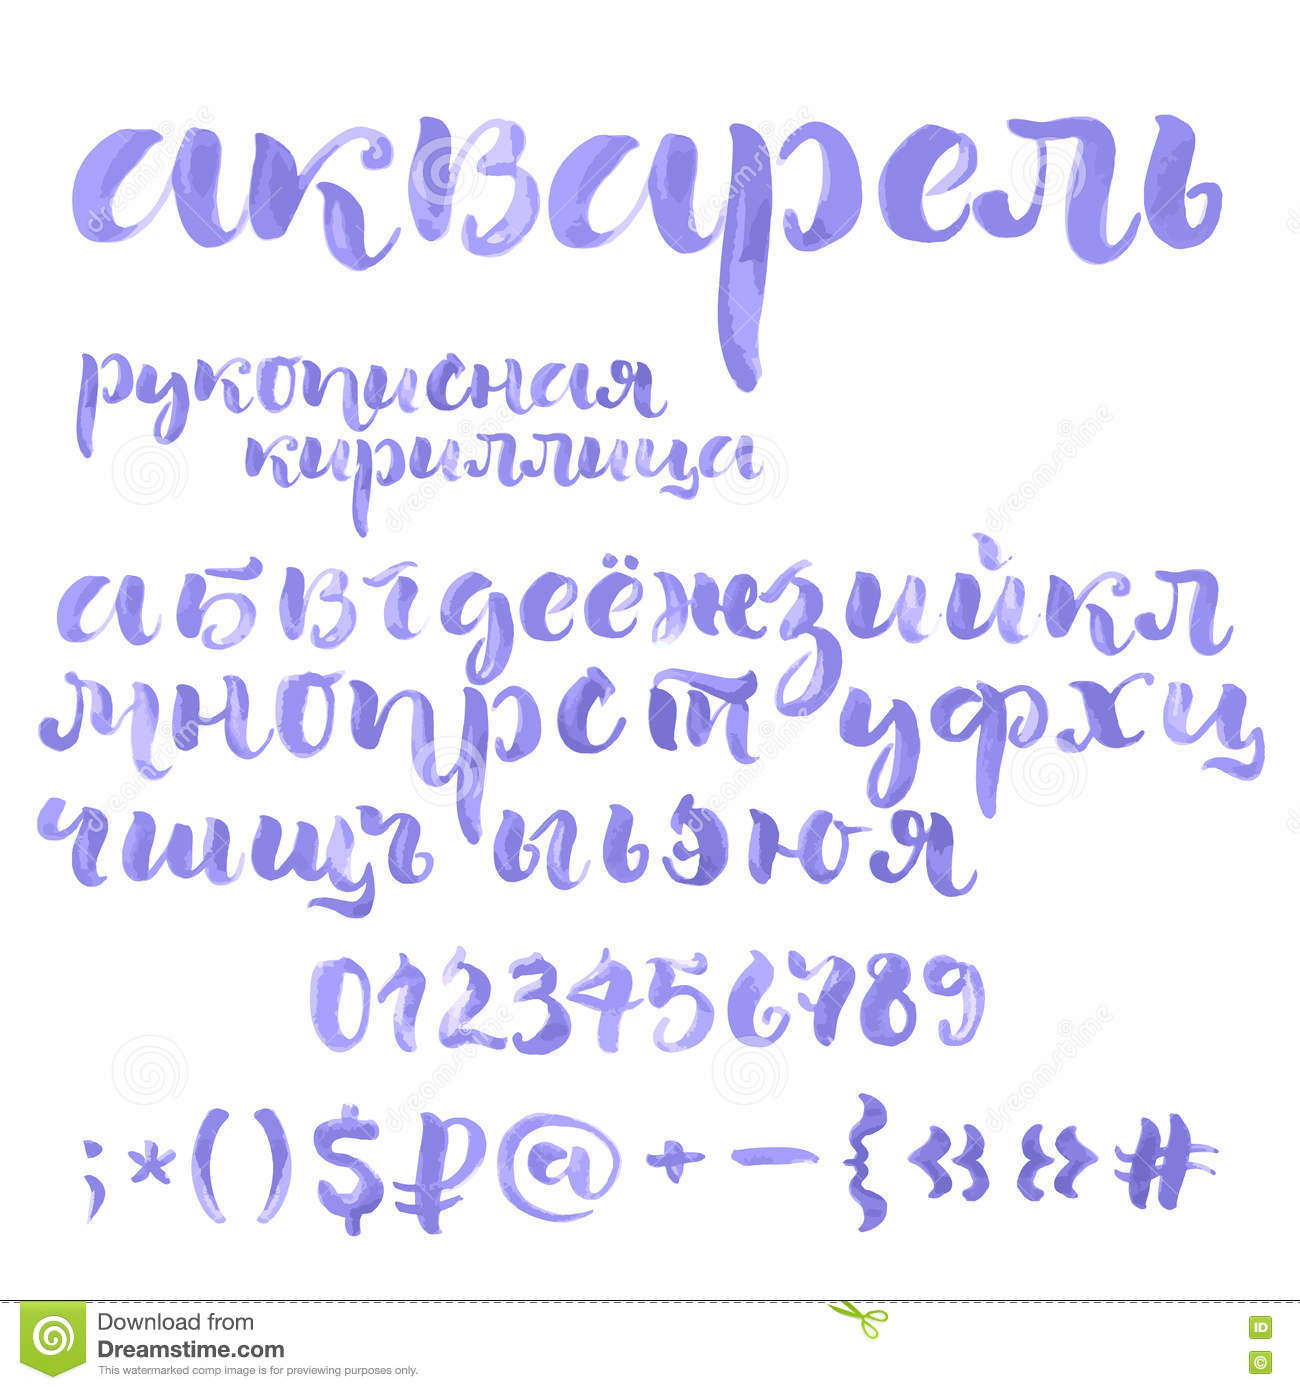 9beb0353a67 Brush script cyrillic watercolor alphabet. Title in Russian means  Watercolor - handwritten cyrillic. Lowercase letters, numbers and special  symbols on white ...